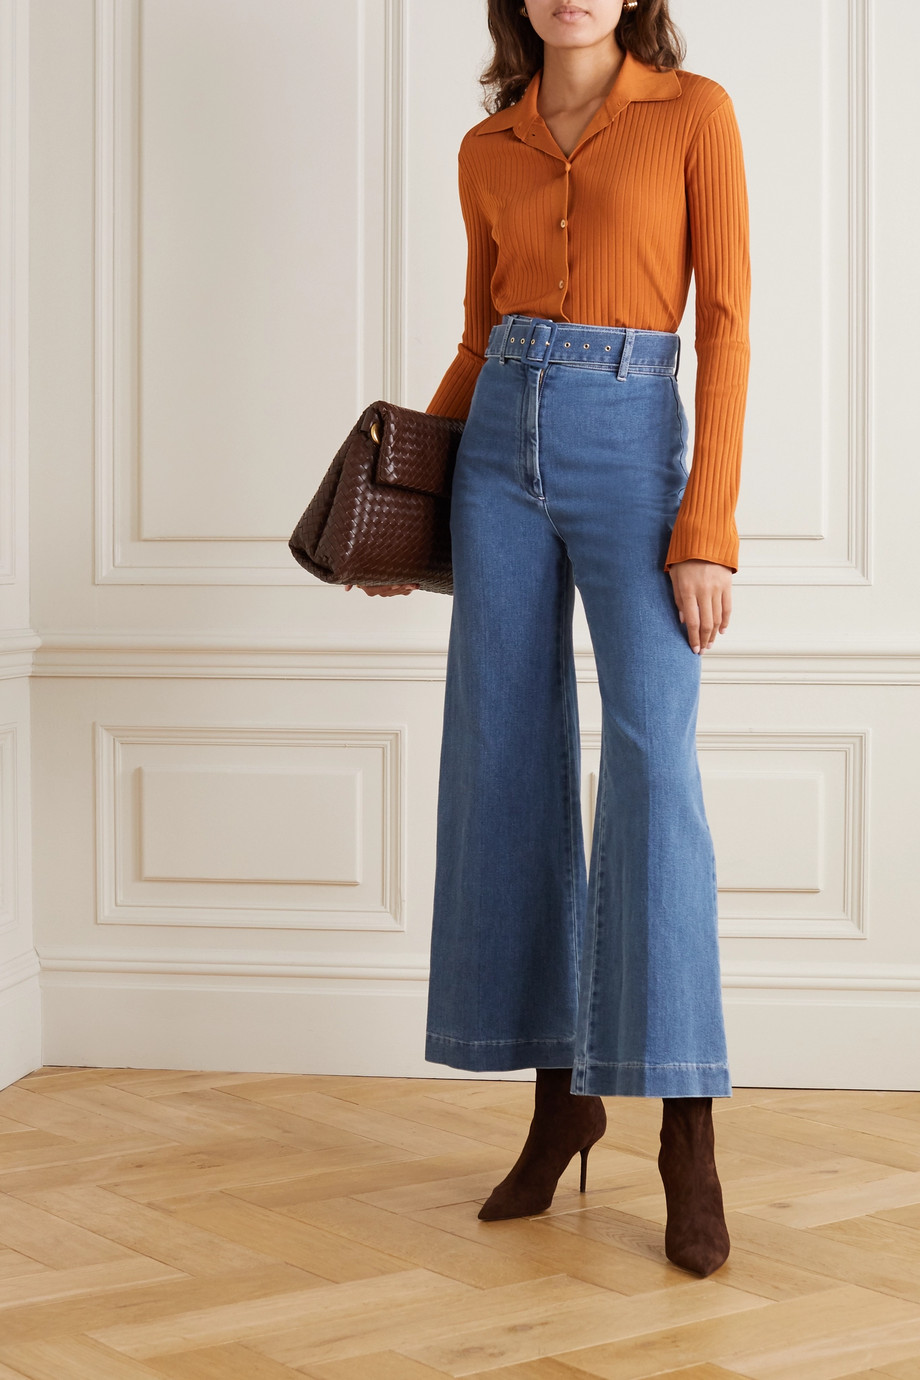 Emilia Wickstead Jada belted high-rise wide-leg jeans